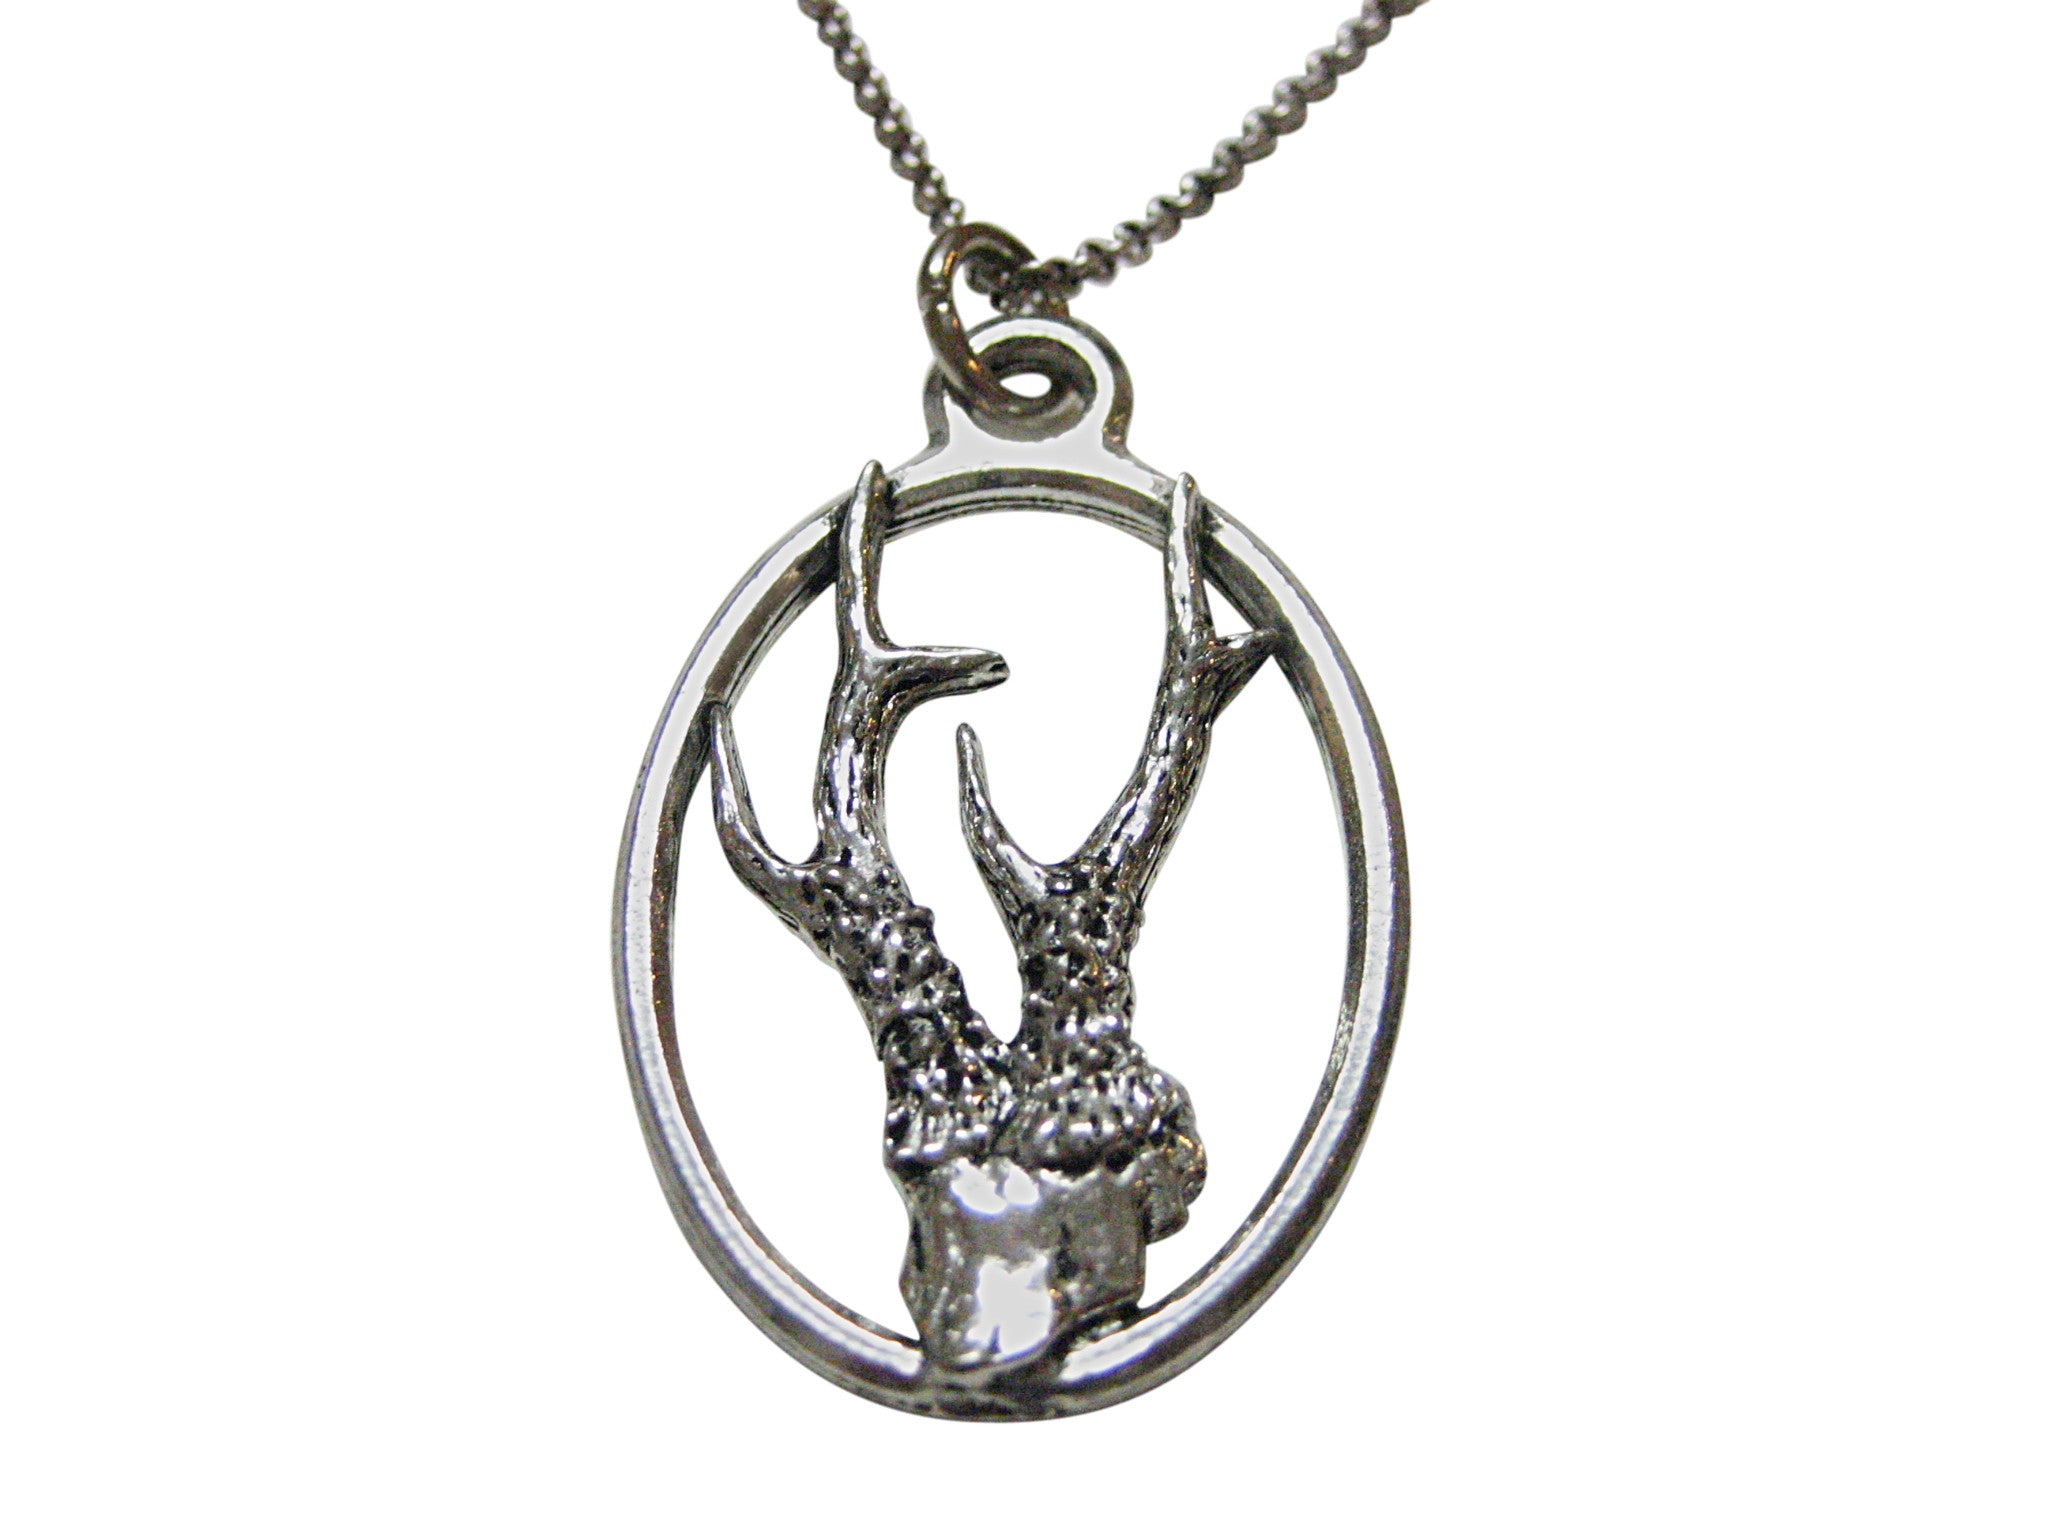 Roe Buck Deer Antler Large Oval Pendant Necklace